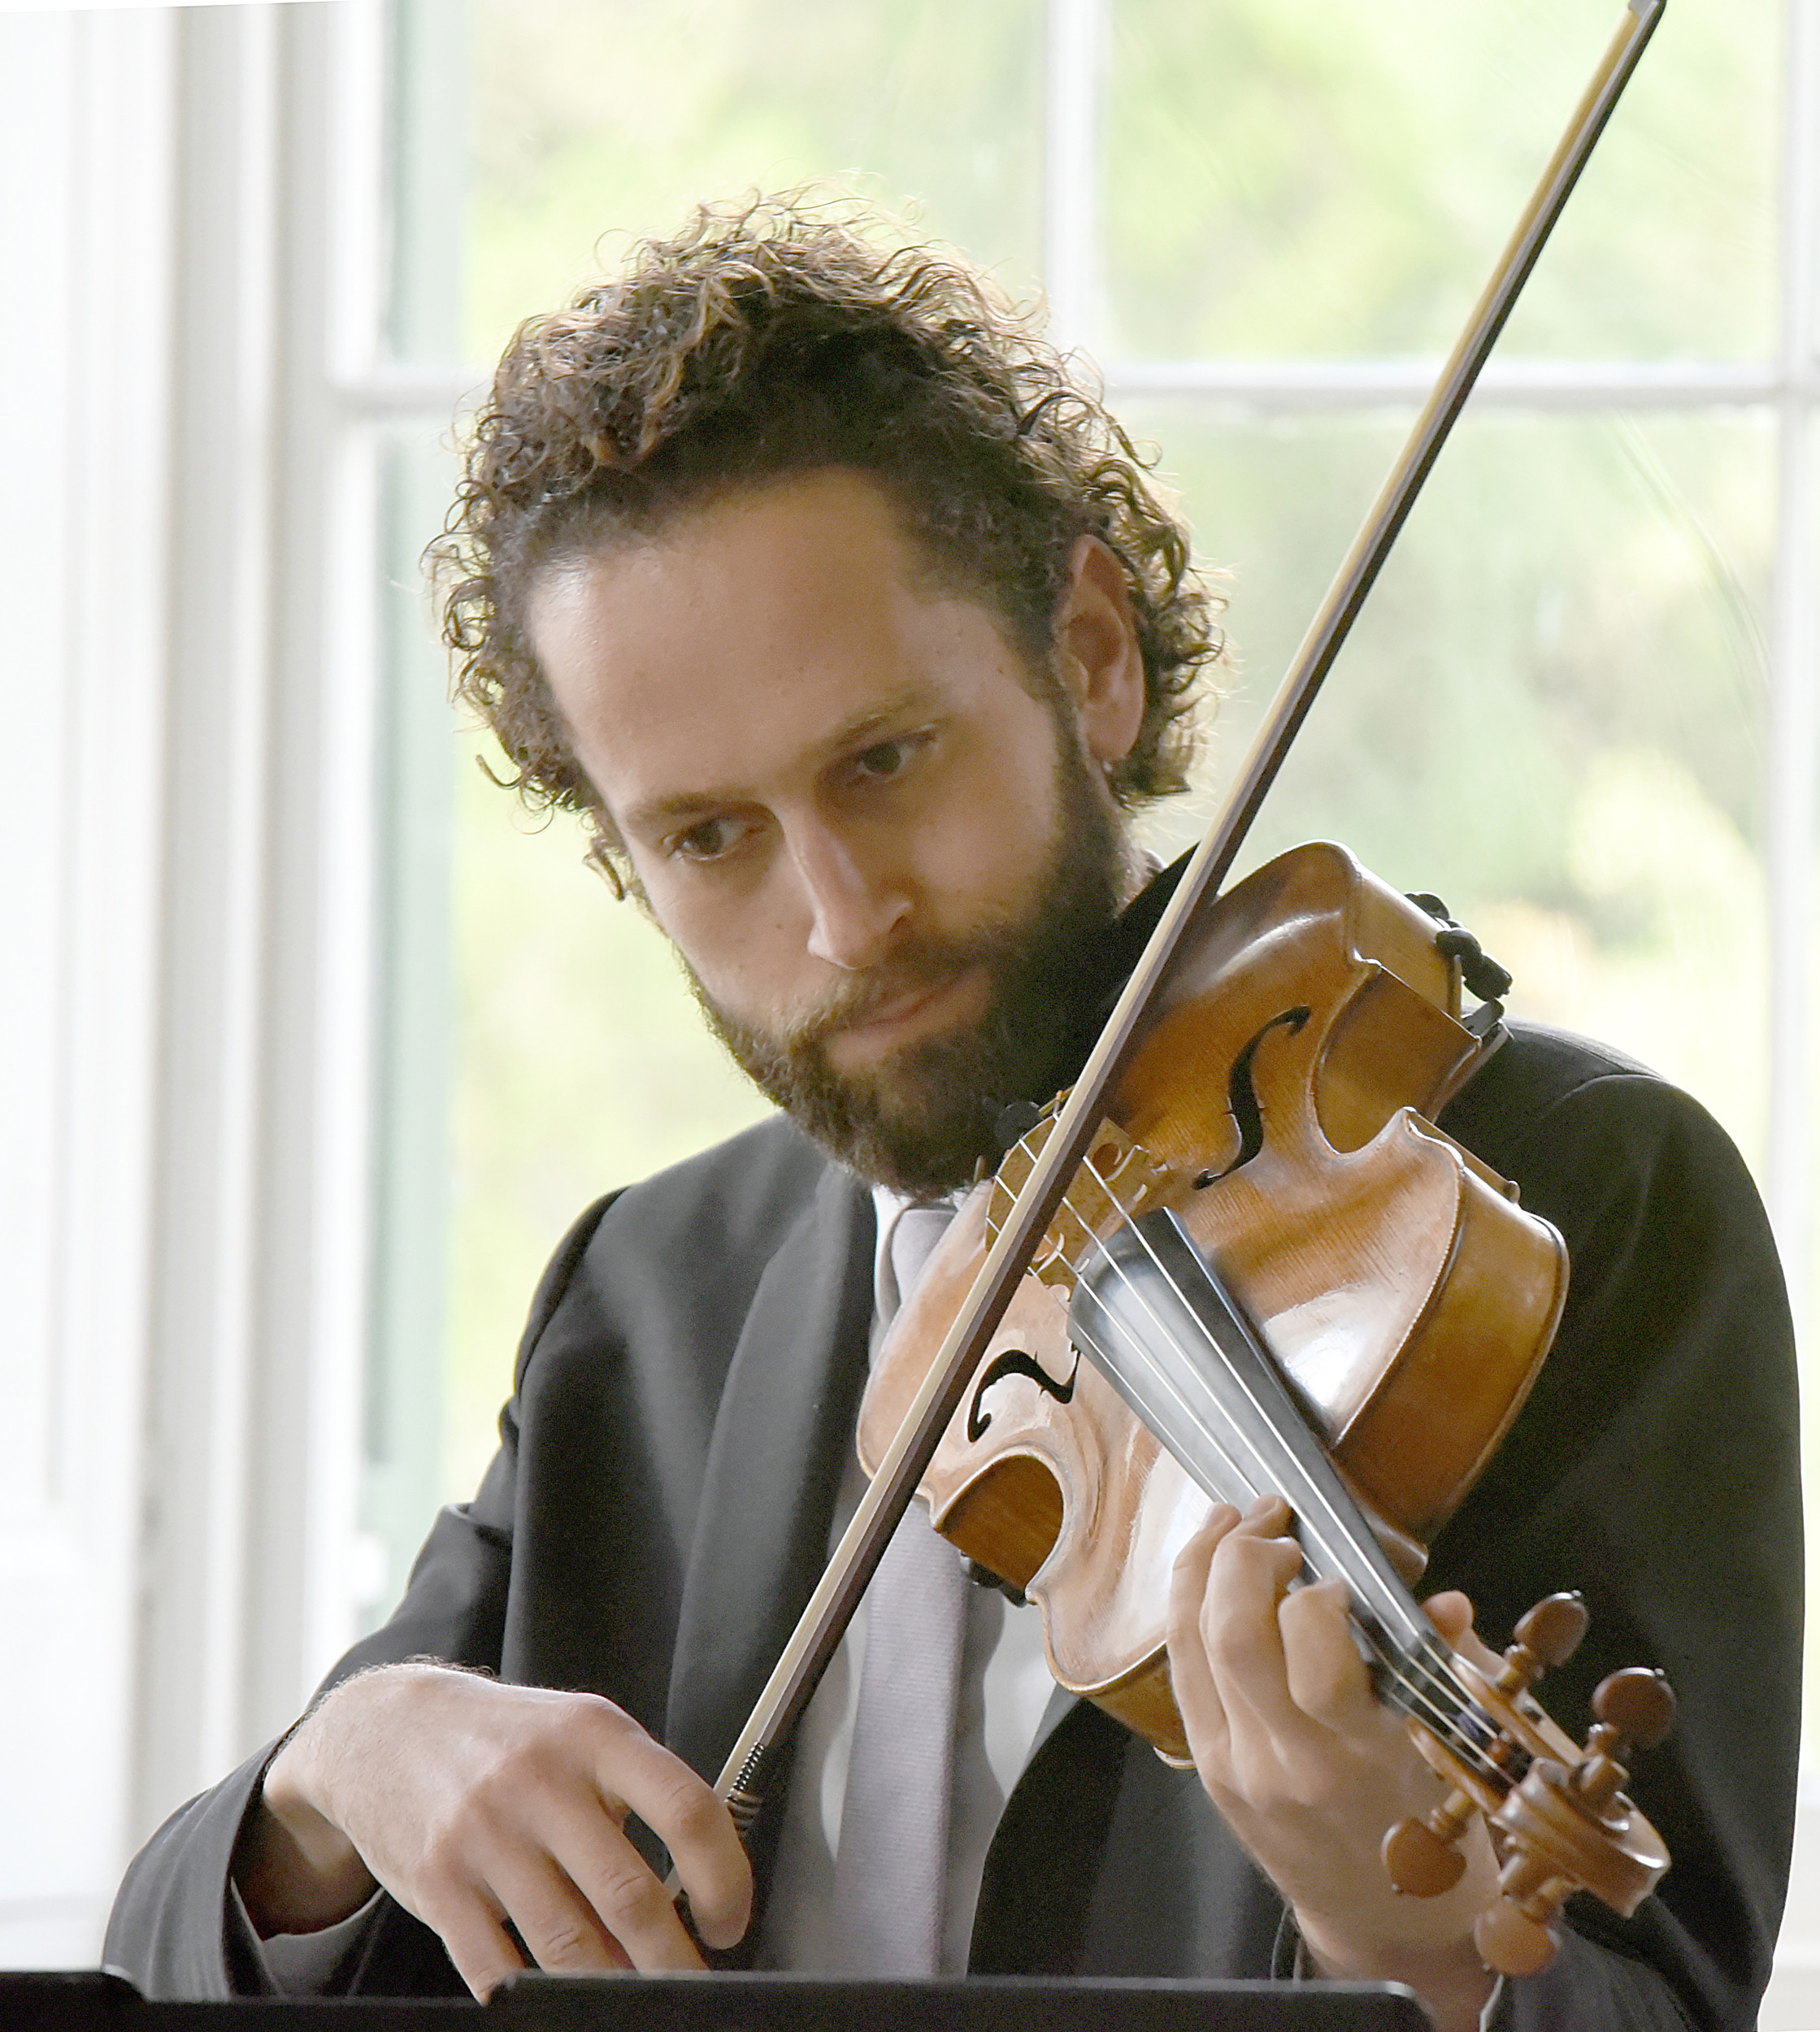 Ben Ullery, an assistant principal viola of the Los Angeles Philharmonic, focuses on performing a piece by Samuel Coleridge-Taylor during the string trio's performance at Millford Plantation.